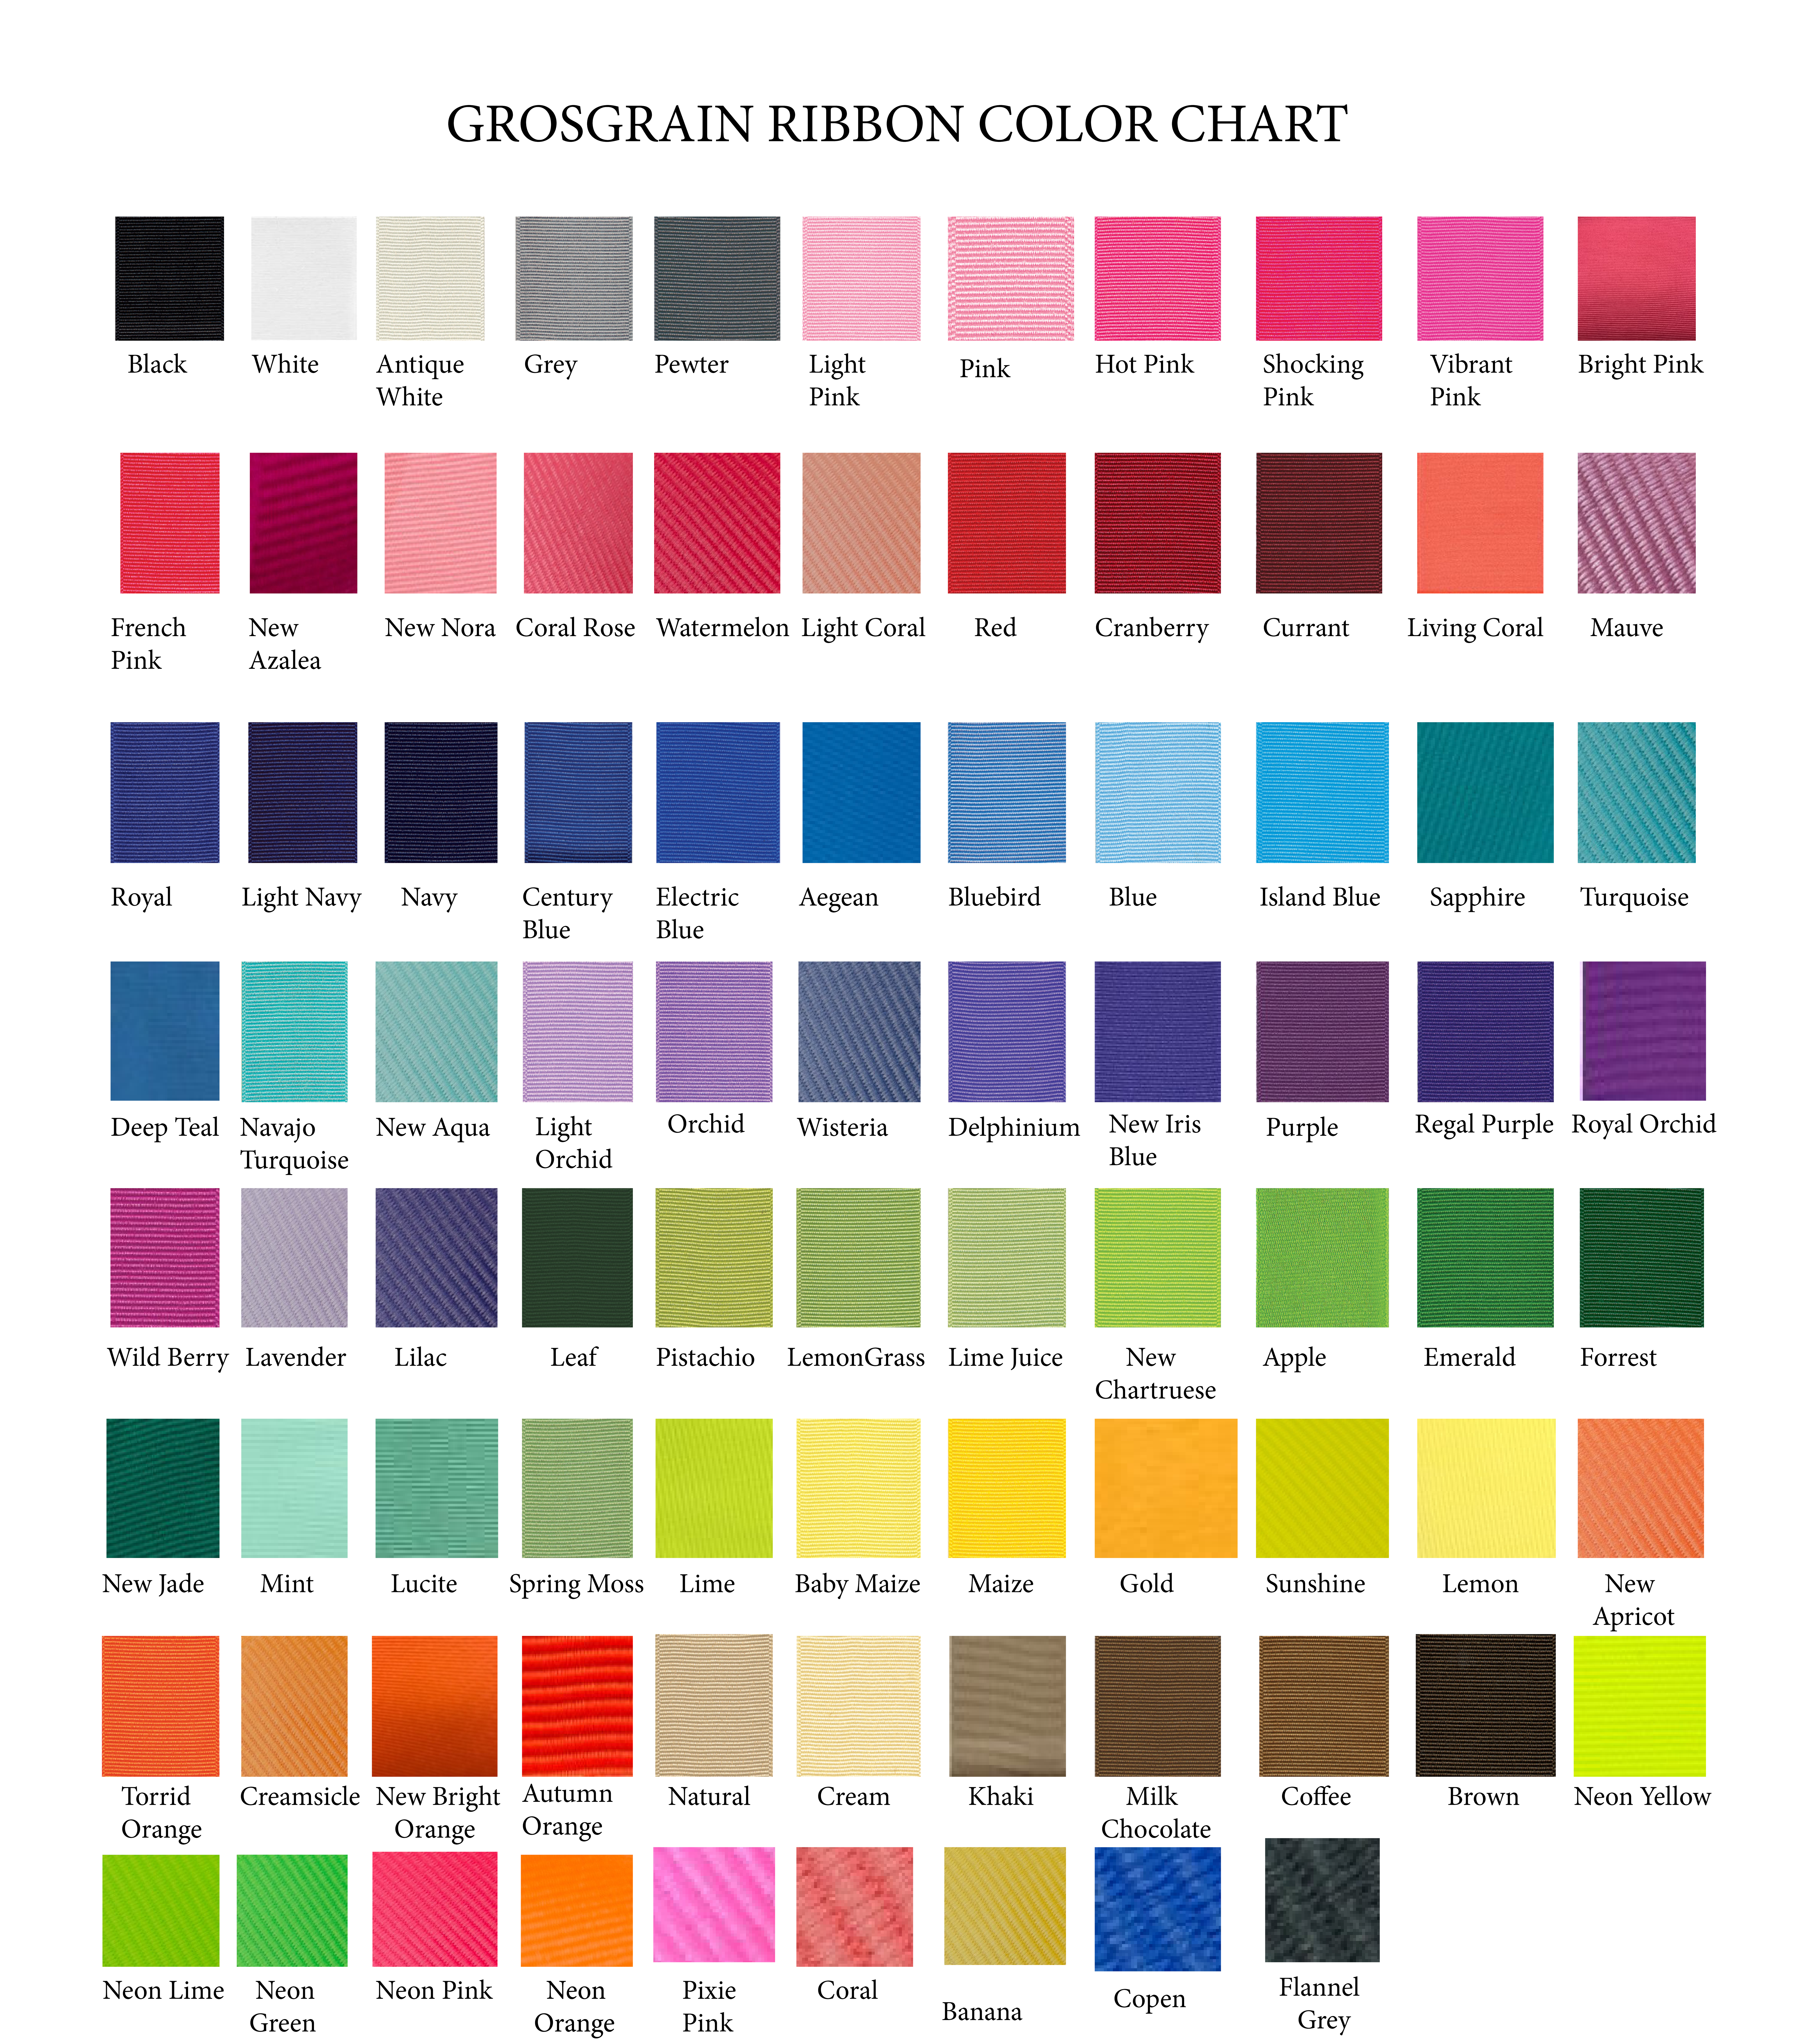 grosgrain-color-chart-2017-updated-9-14-17.jpg